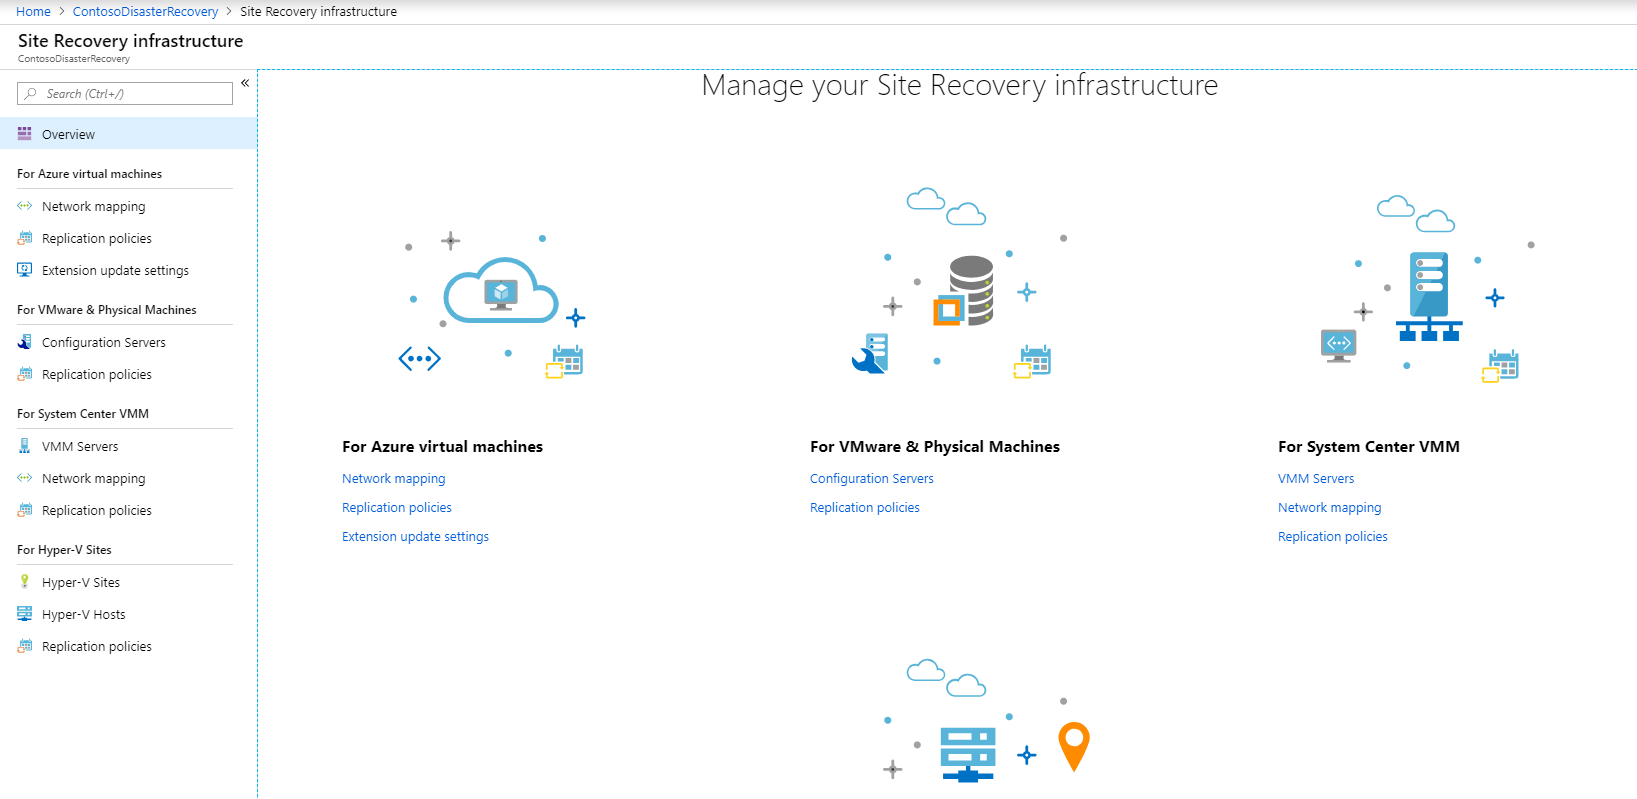 Screenshot of Site Recovery infrastructure